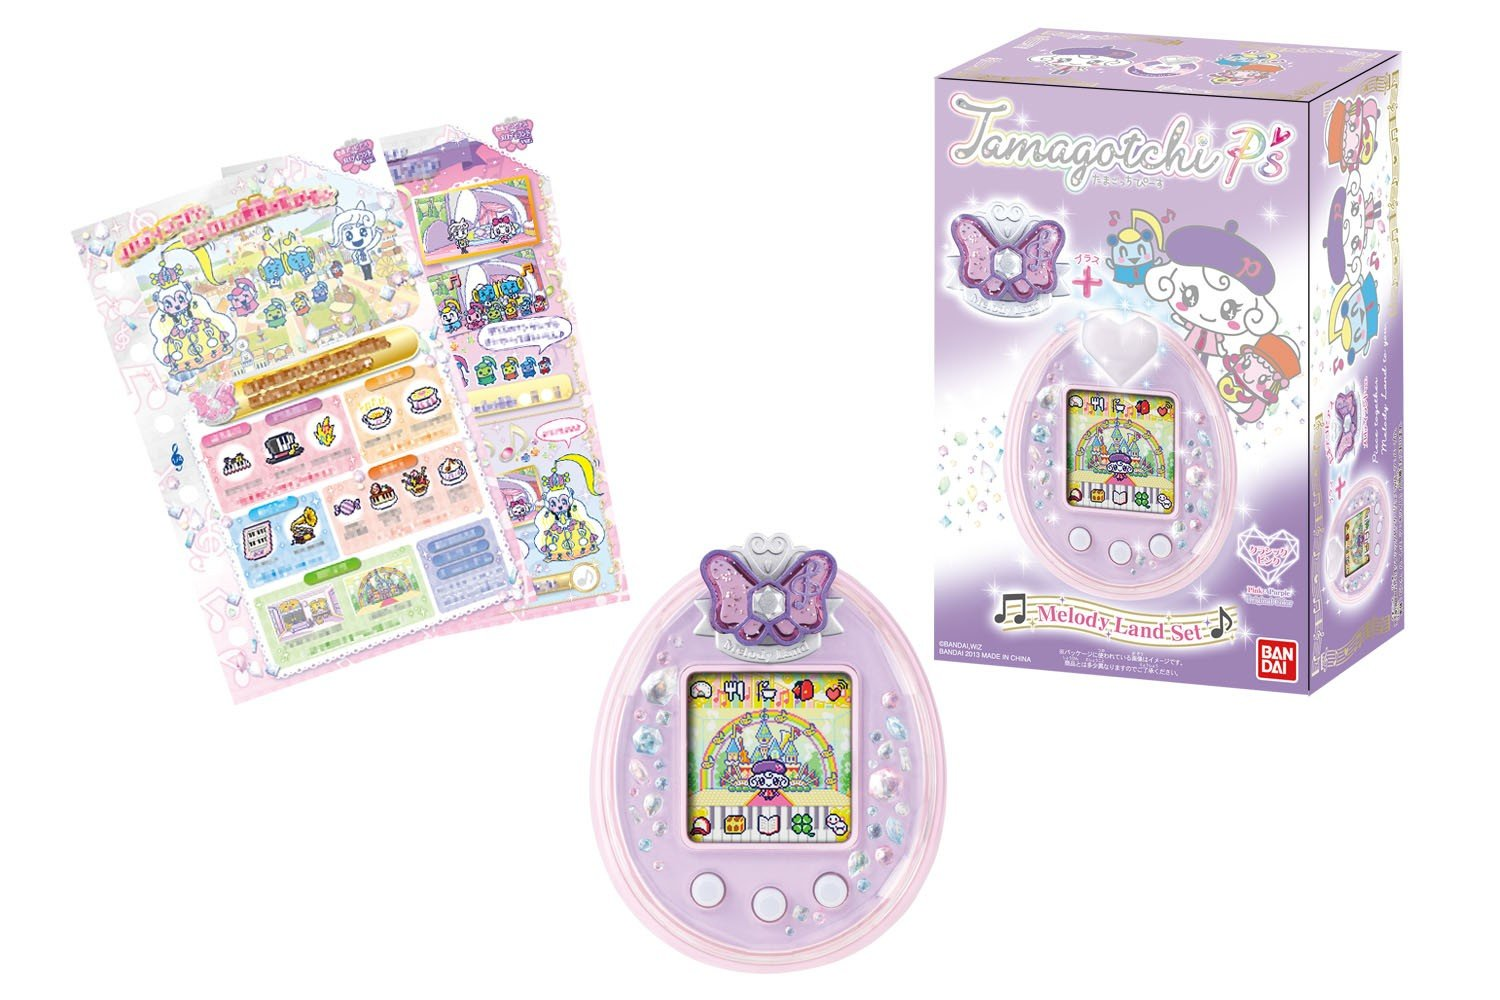 Tamagotchi P's Melody Land Set (Japan Import) by Bandai (Image #2)